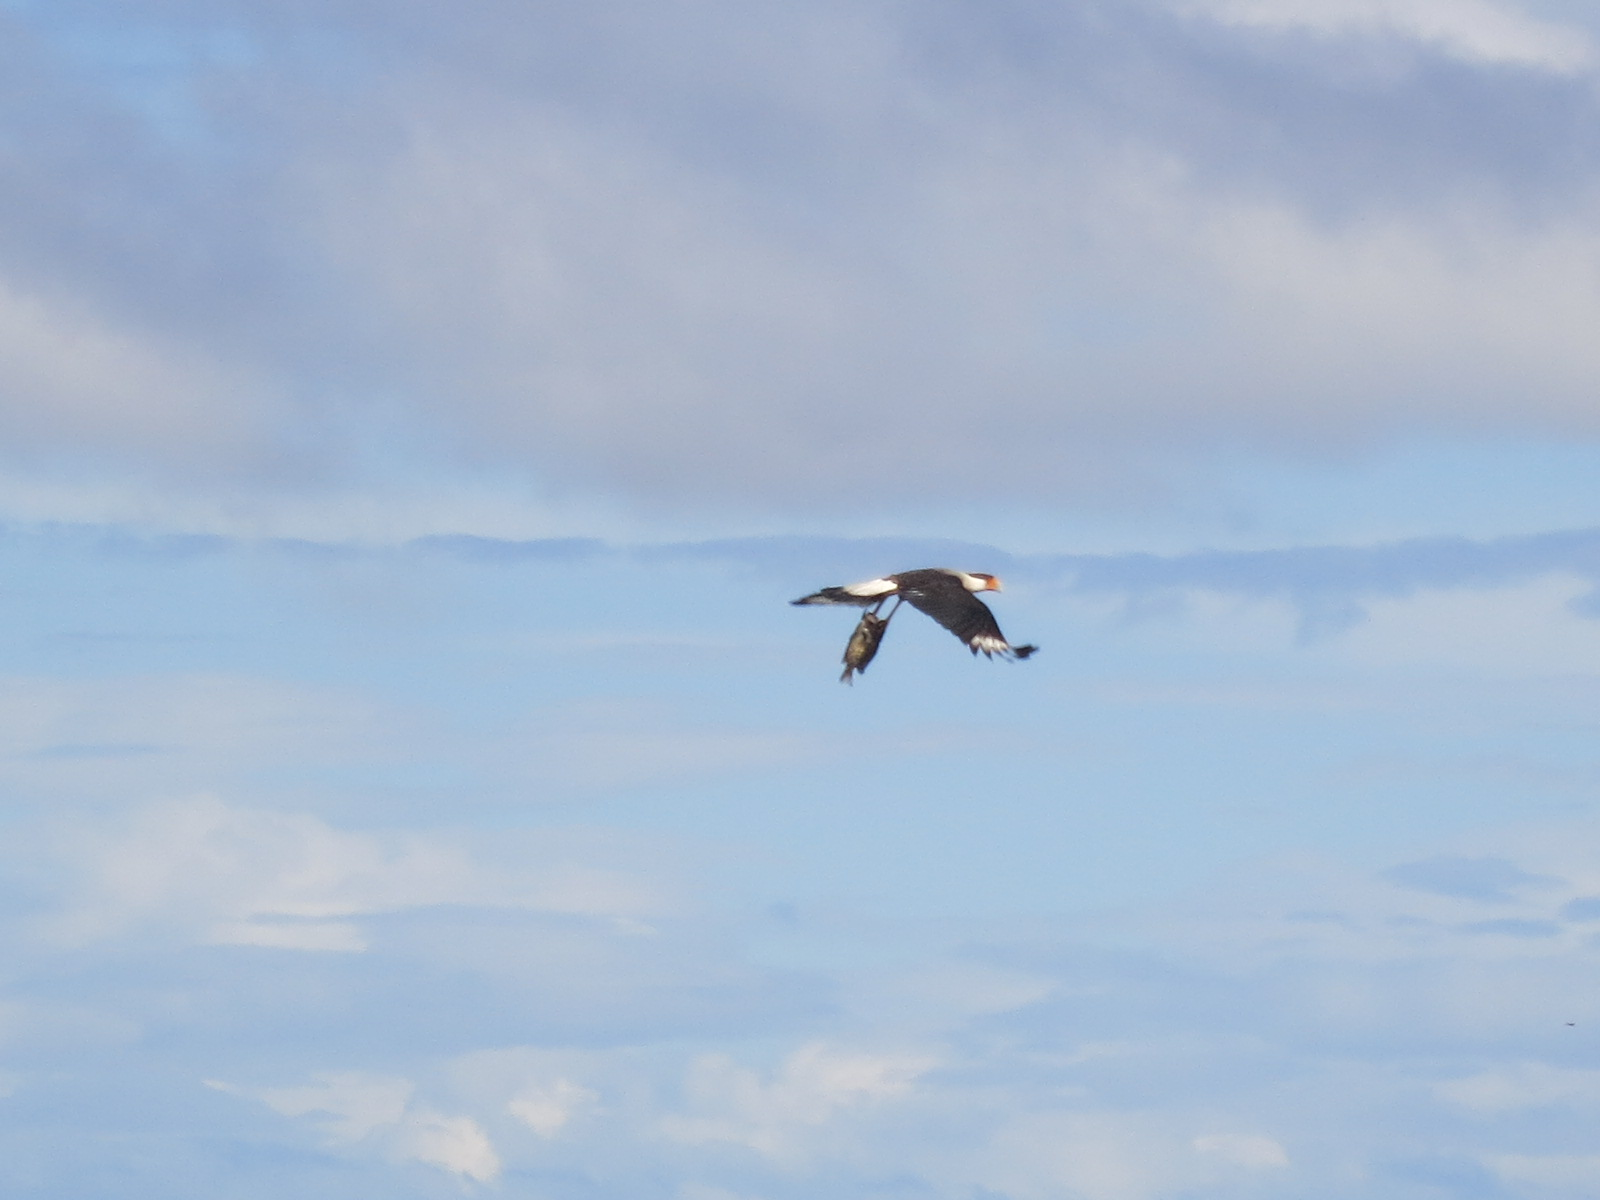 Look closely to see if you can see what this bird is carrying